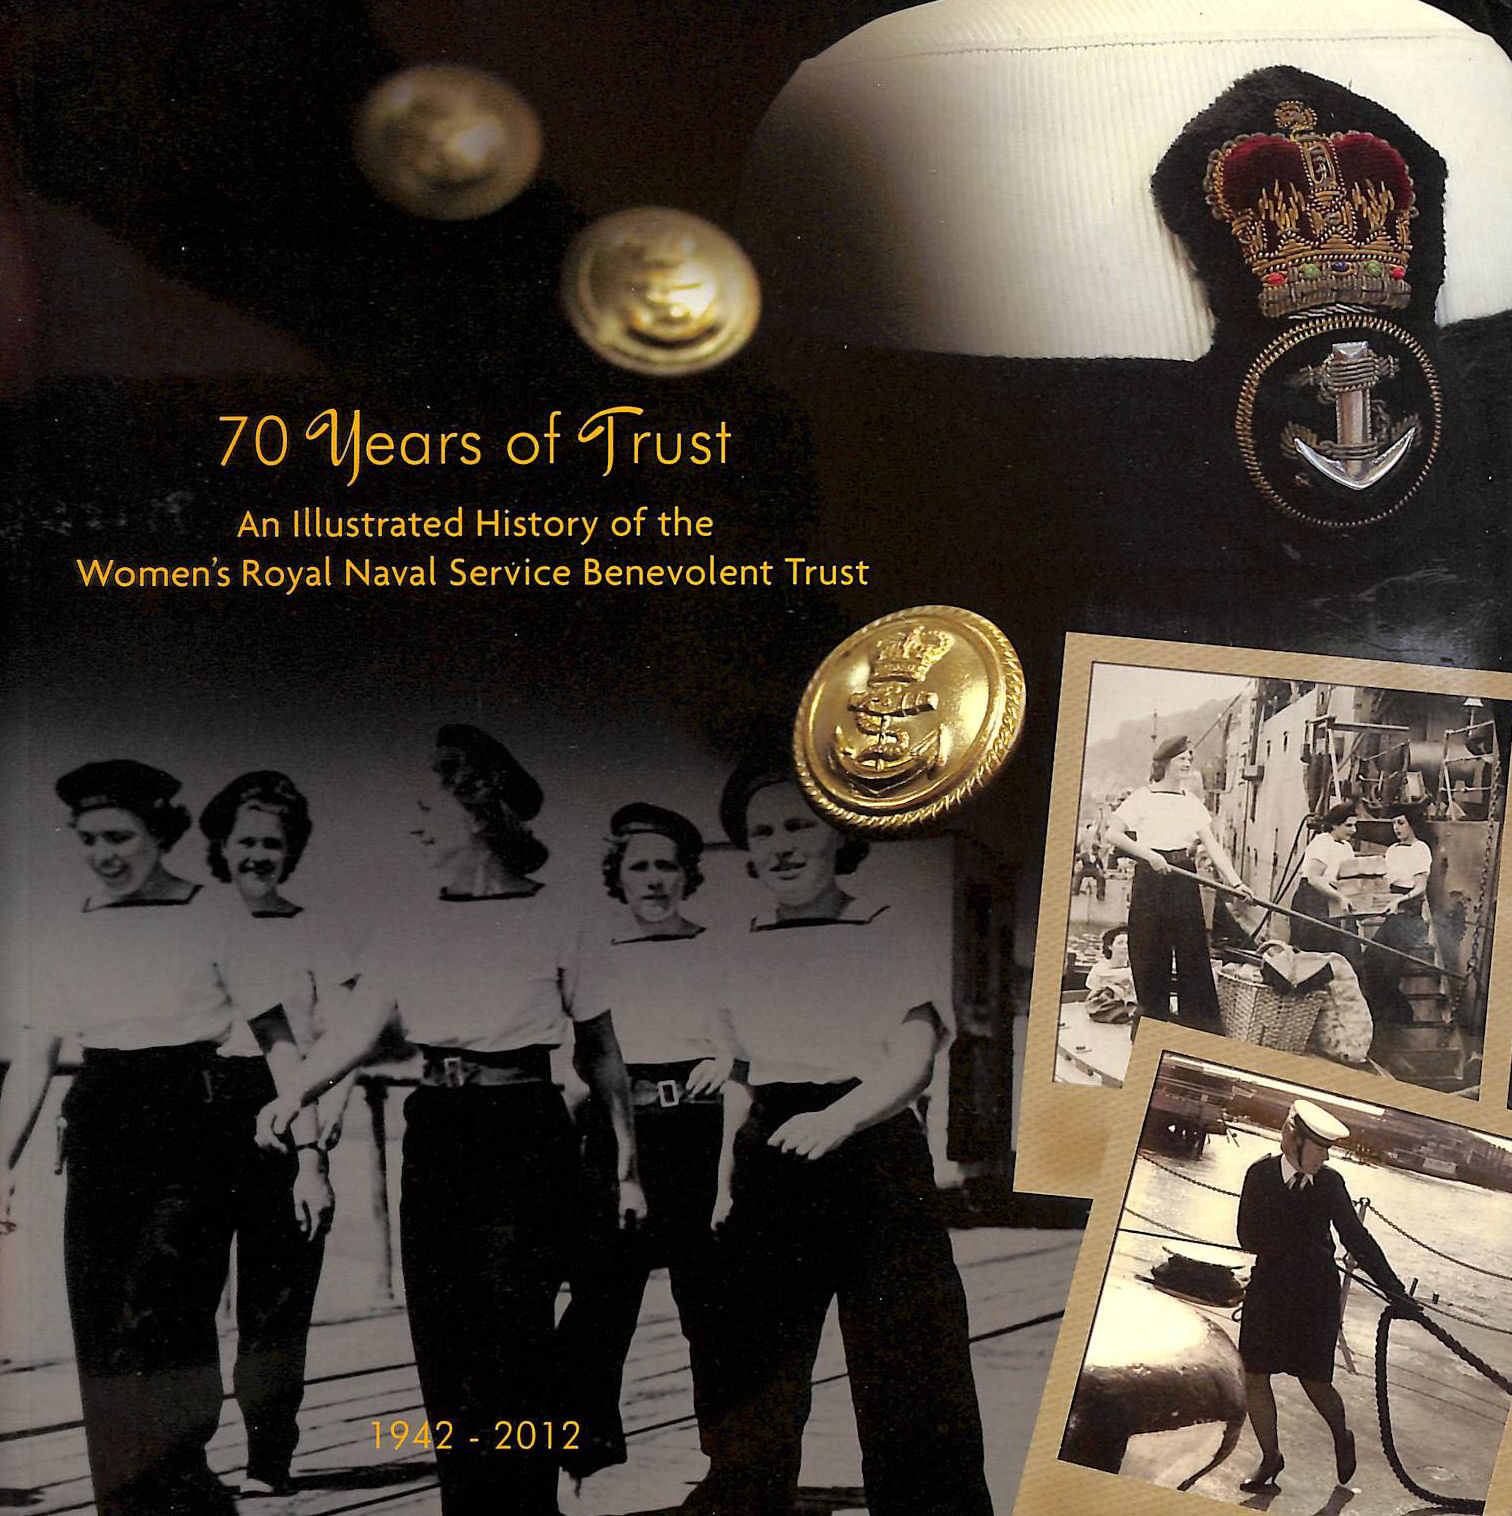 Image for 70 Years of Trust: an Illustrated History of the Women's Royal Naval Service Benevolent Trust 1942-2012